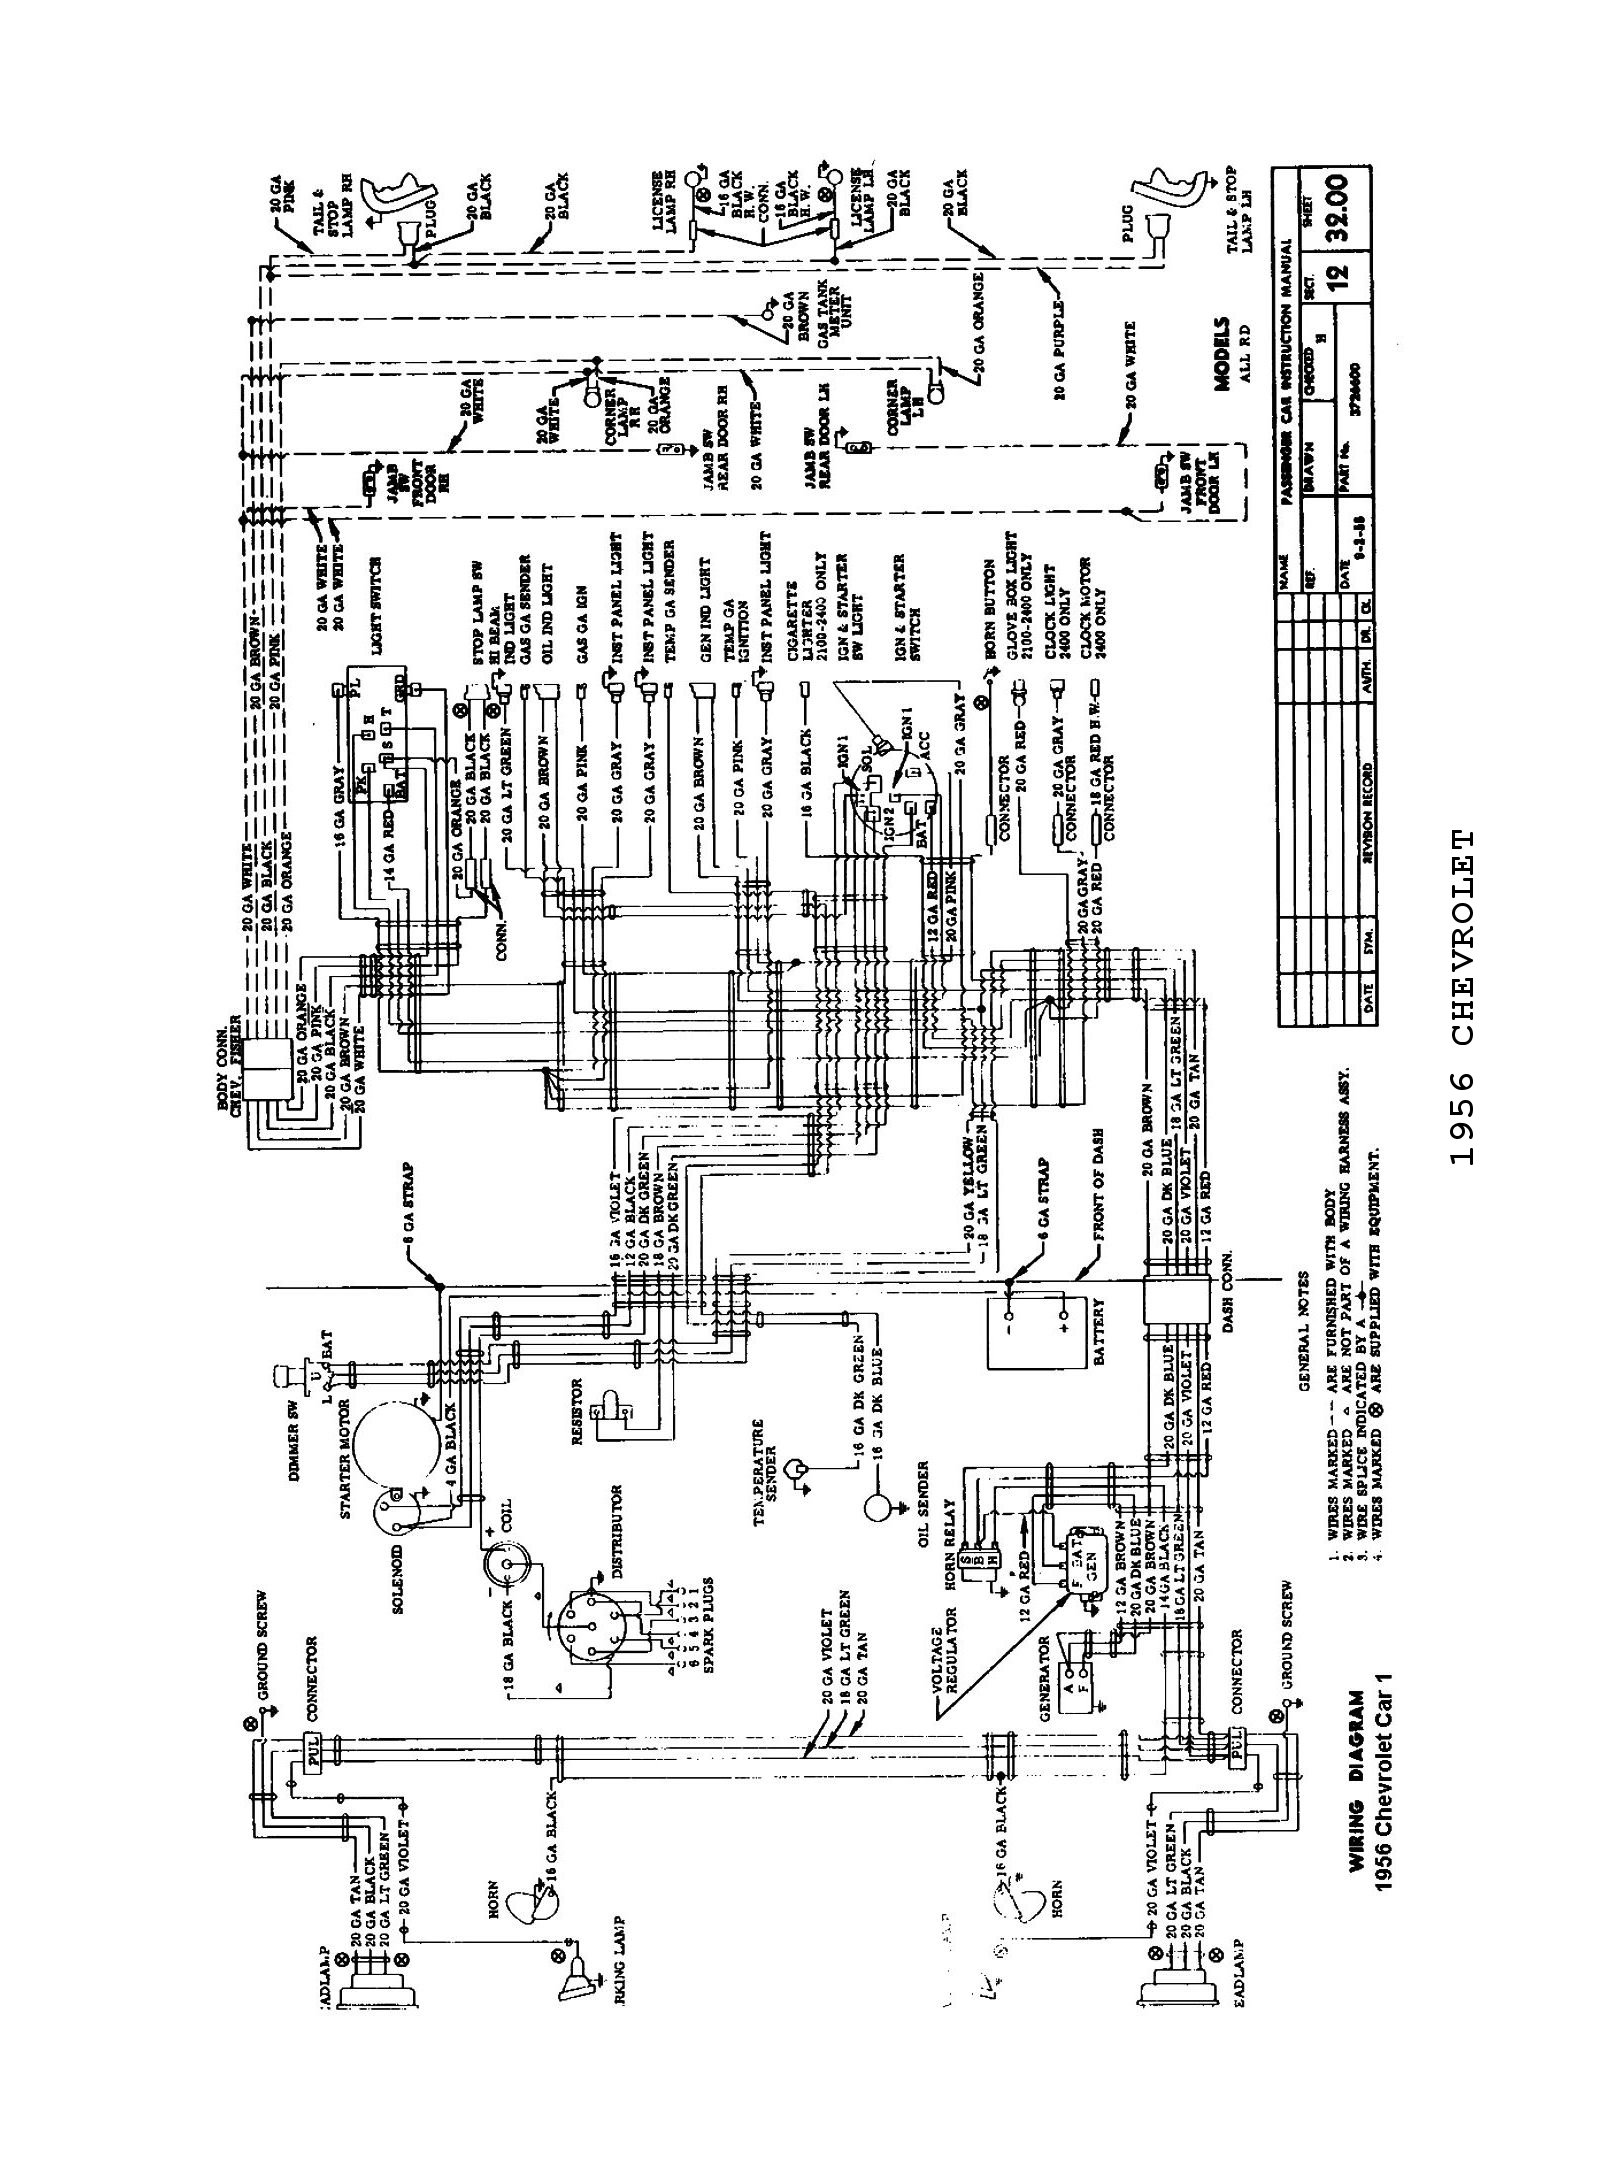 1956 Chevy Headlight Wiring Diagram Data 3 Prong Diagrams Plug